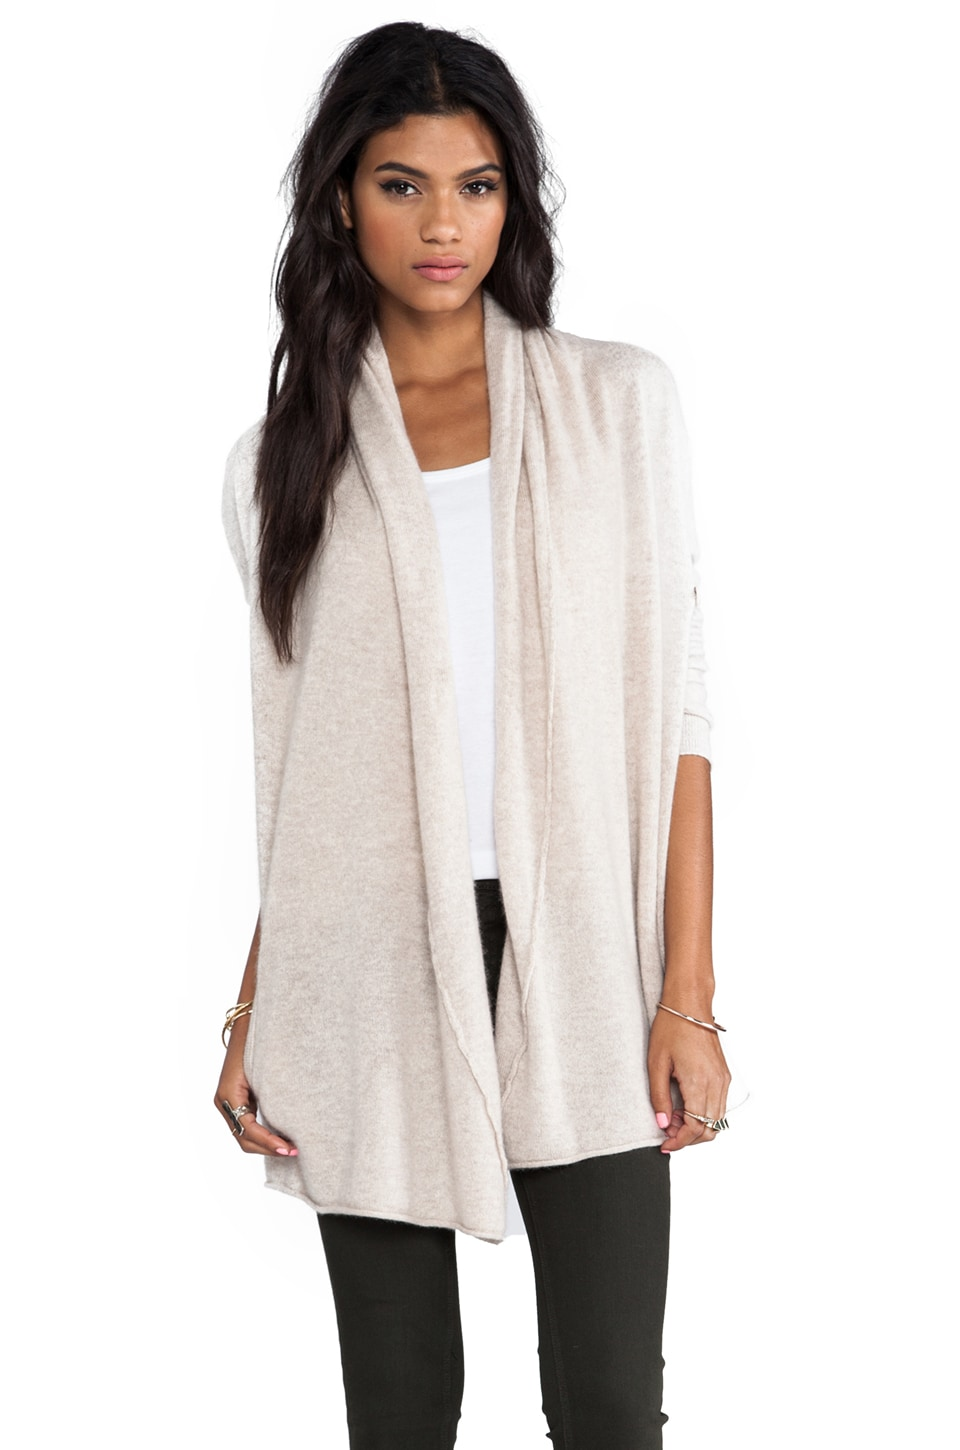 Central Park West Bristol Cashmere Cardigan in Oatmeal